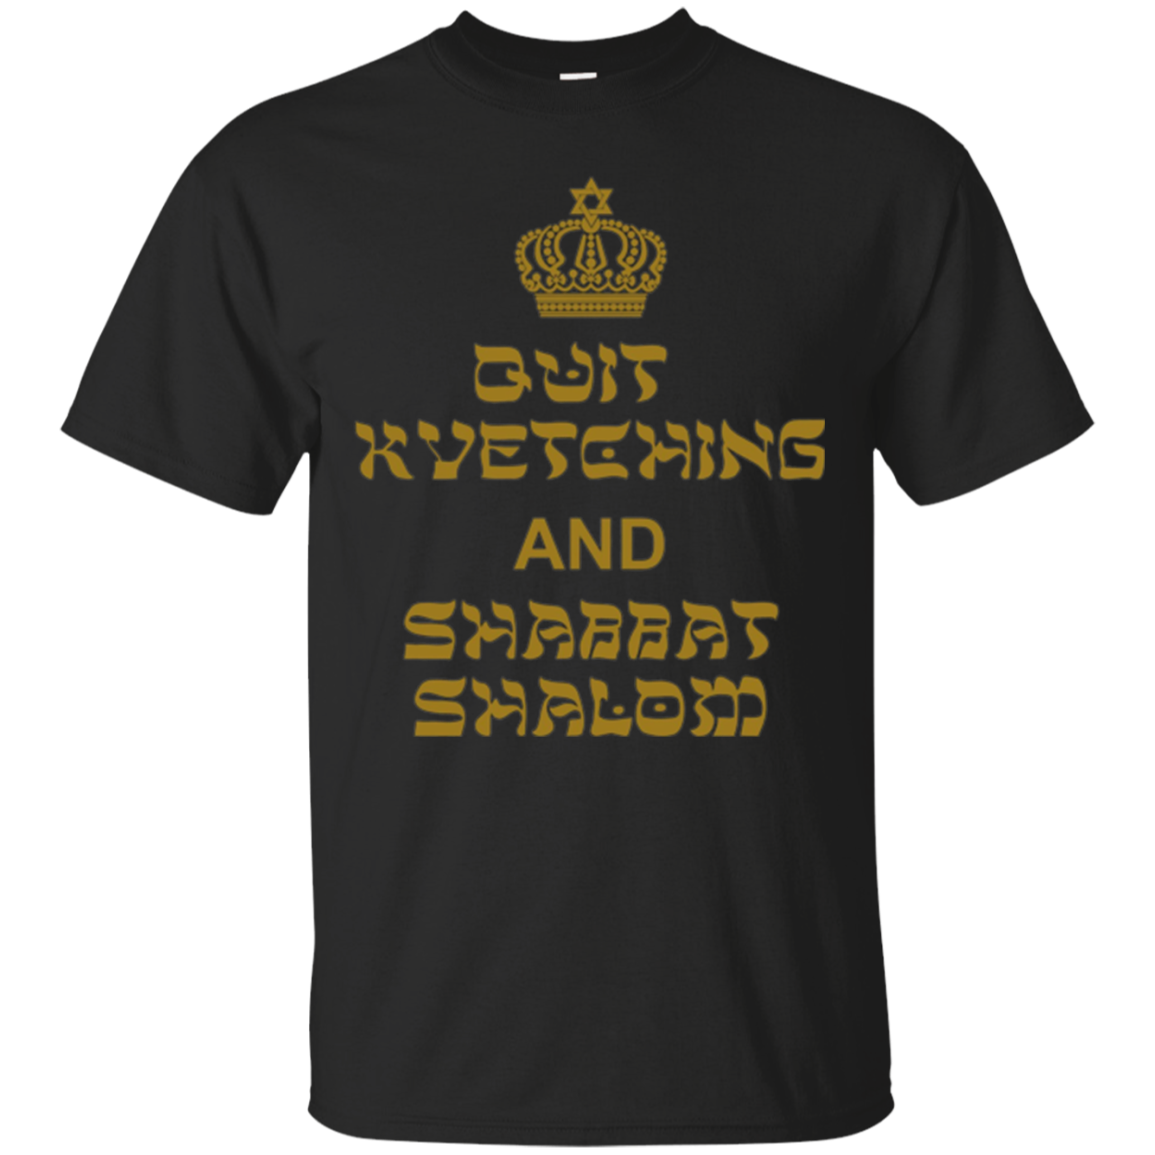 Quit Kvetching and Shabbat Shalom long-sleeve t-shirt